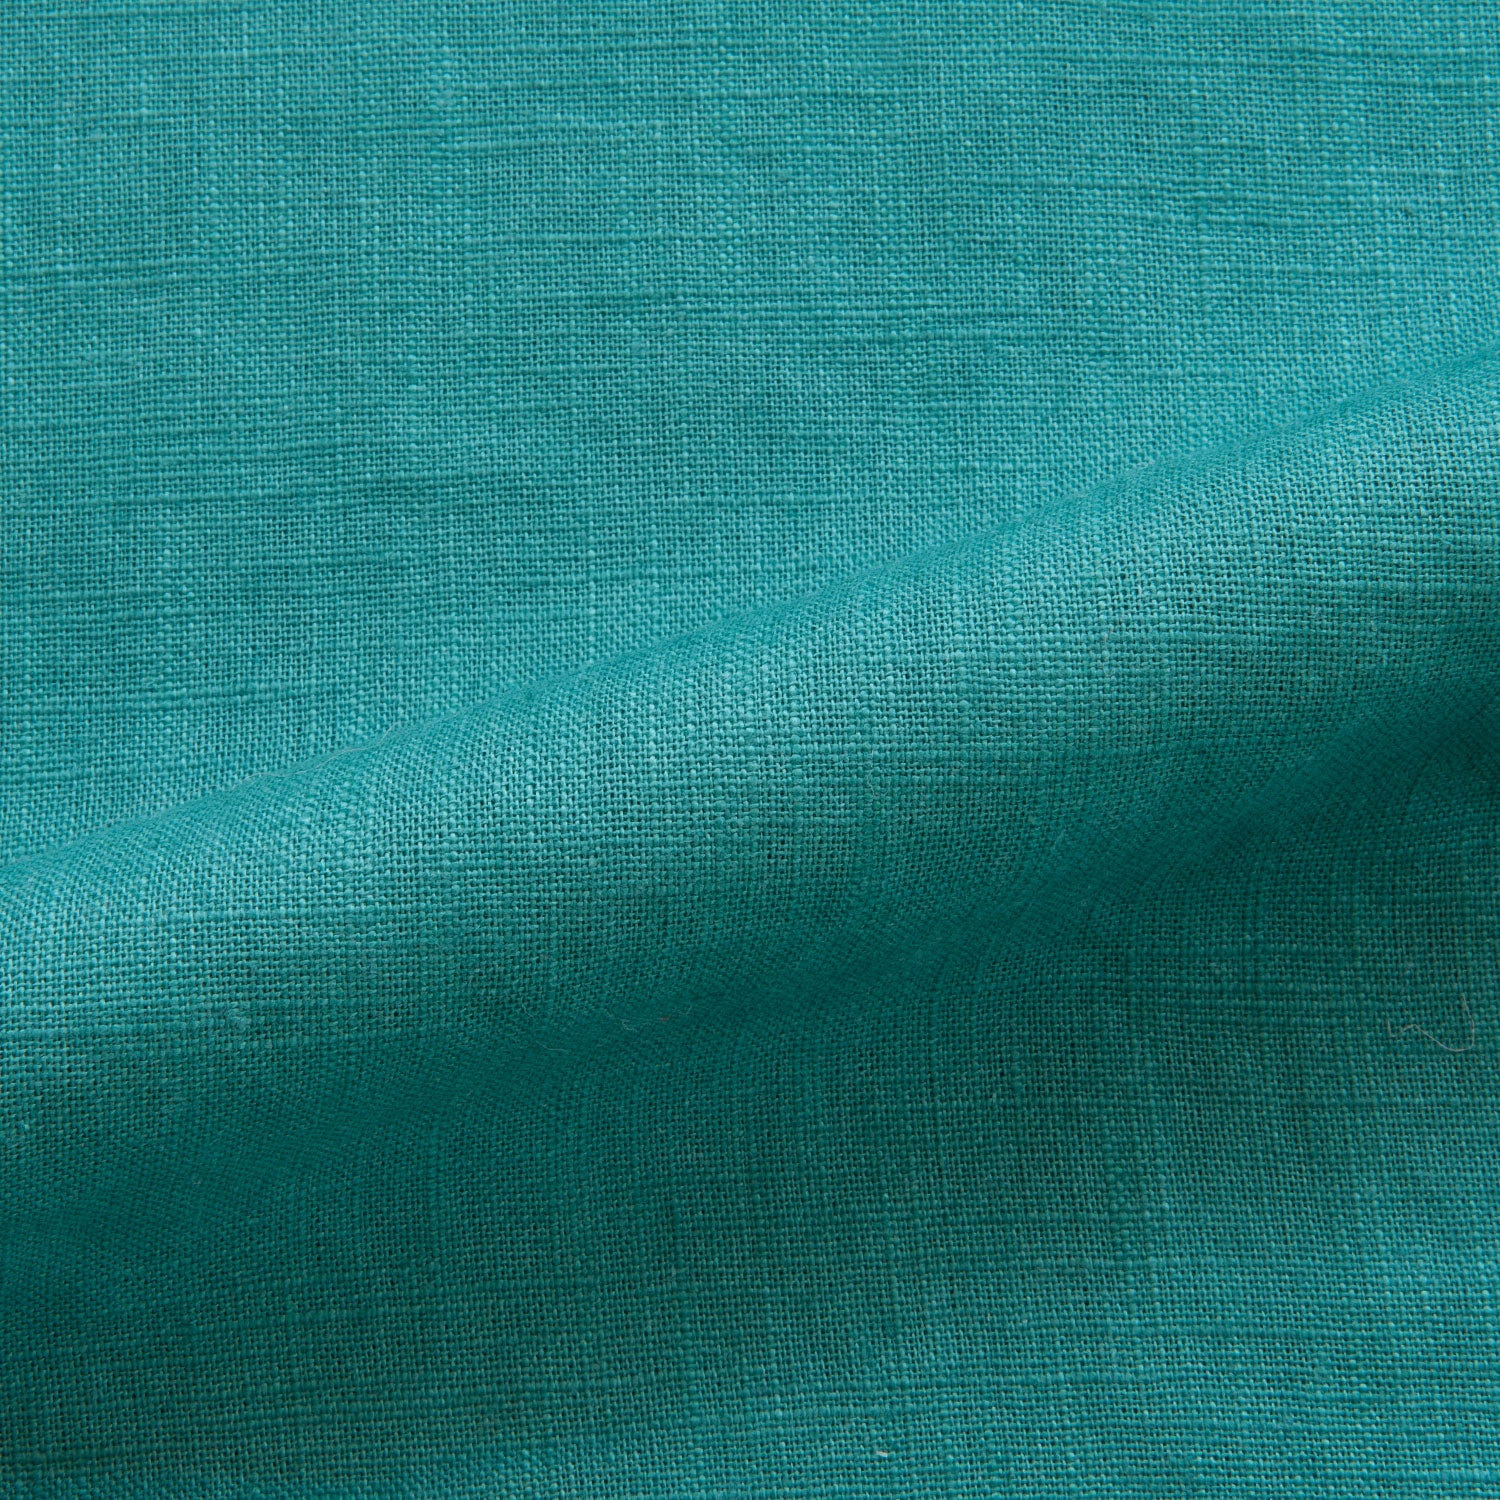 Enzyme Washed Linen in Teal Green